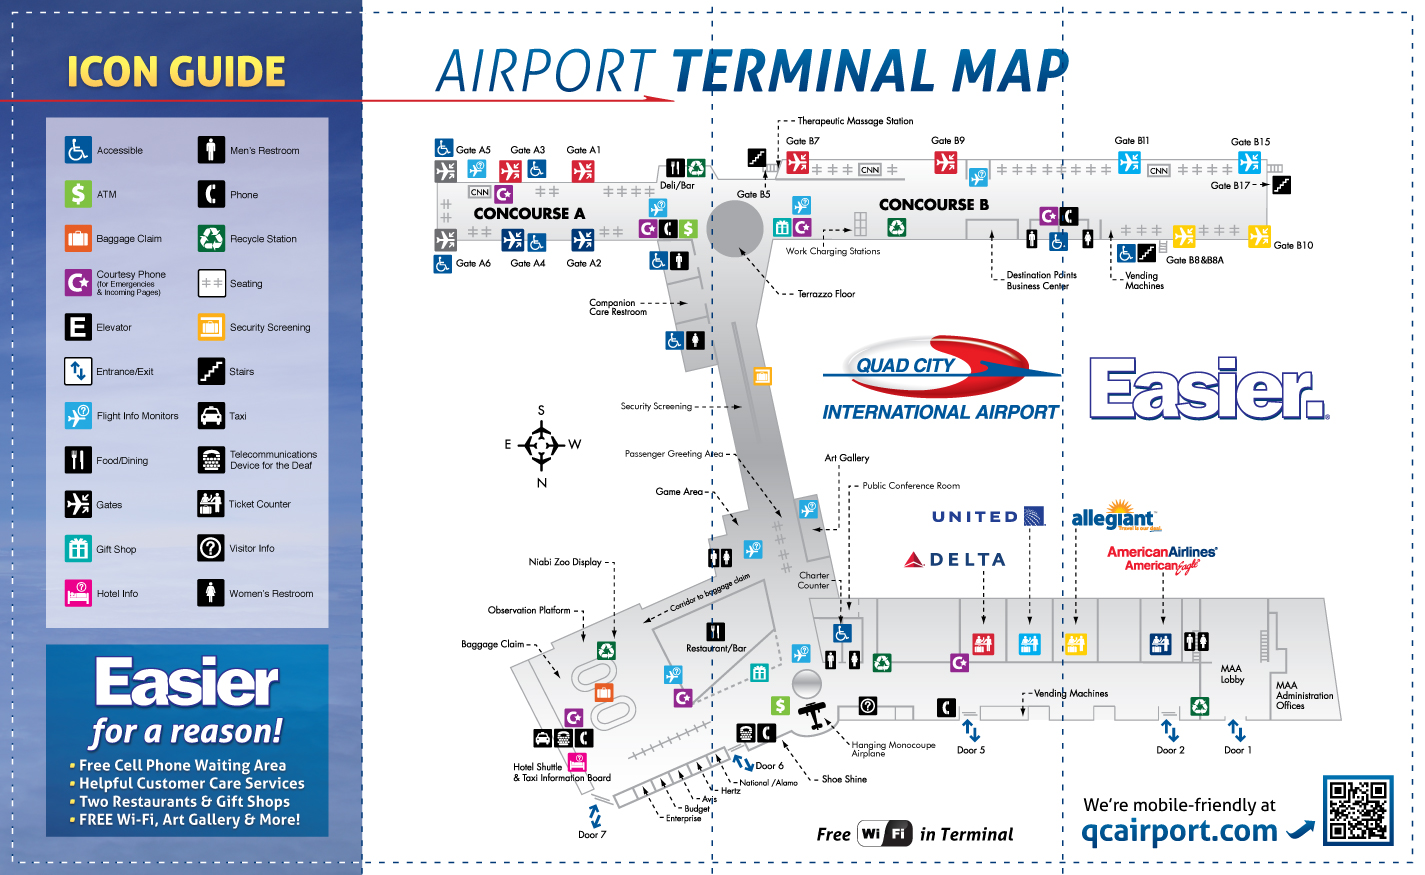 Terminalmap on Enterprise Car Rental Tampa Airport